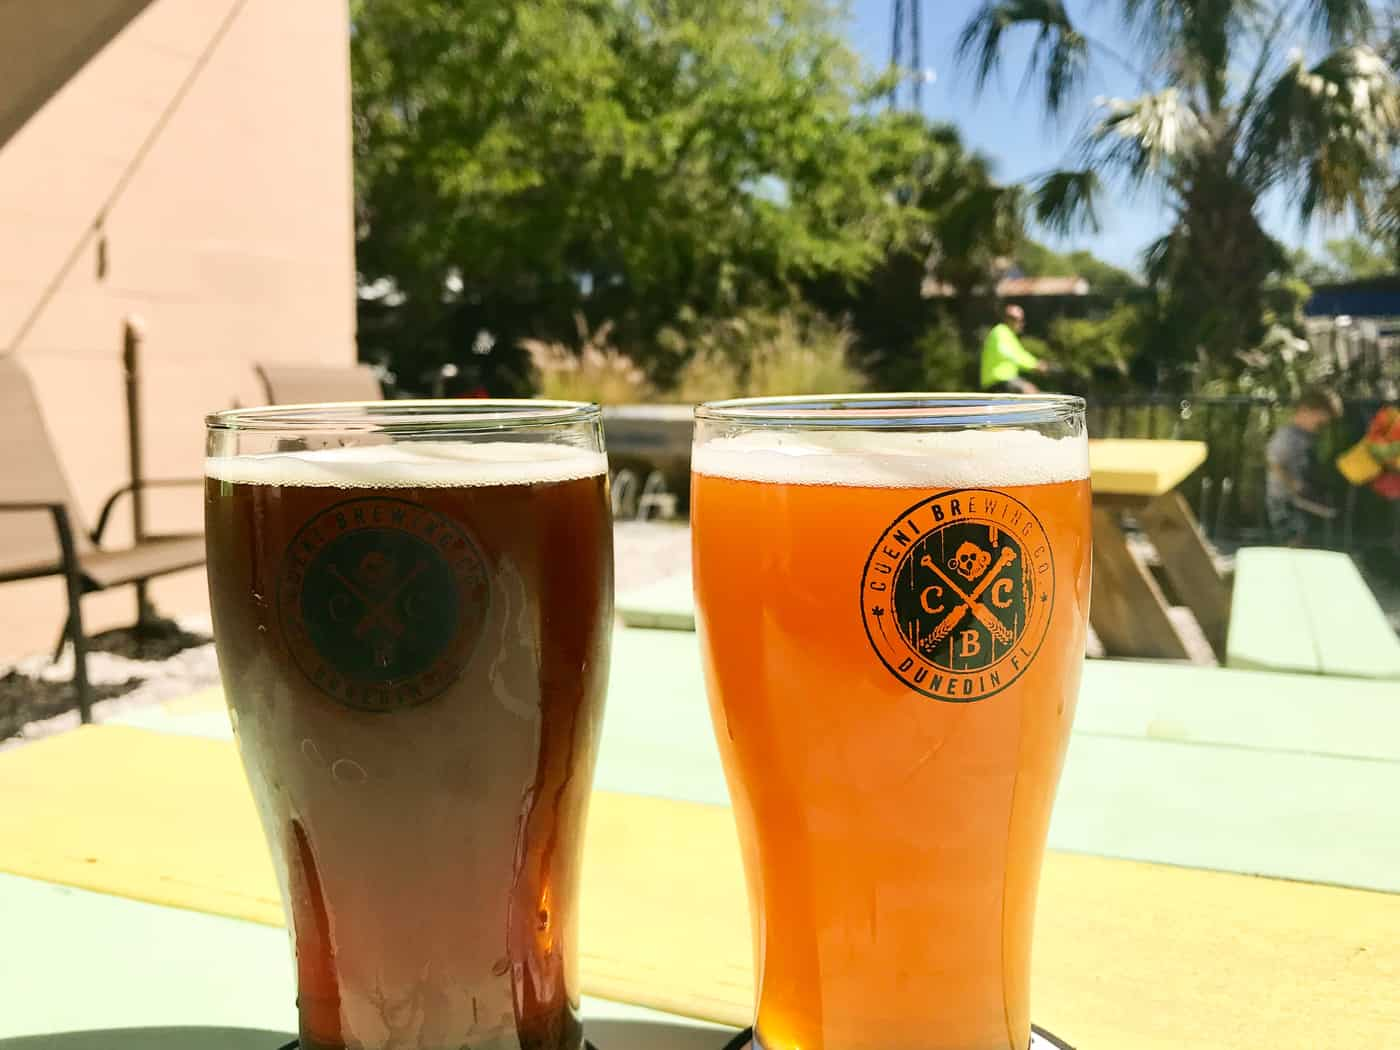 Beers on the back patio of Cueni Brewing Co, craft brewery in Dunedin FL